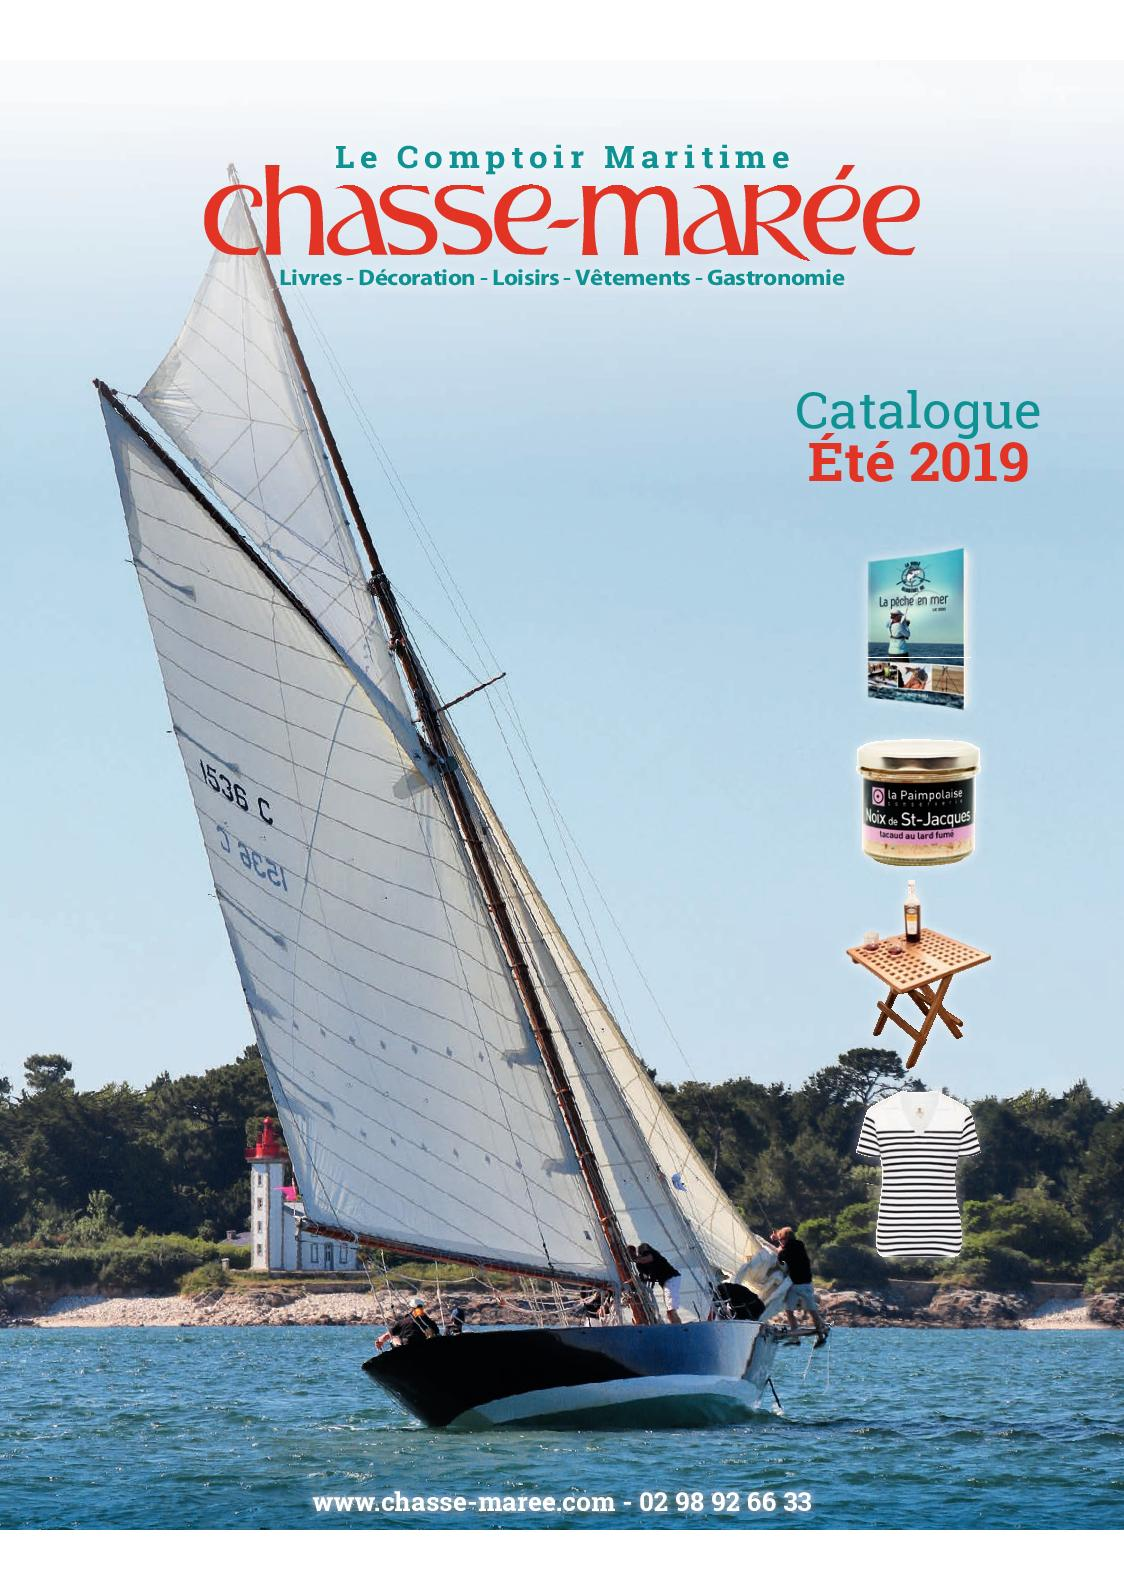 Calameo Comptoir Maritime Chasse Maree Catalogue Ete 2019